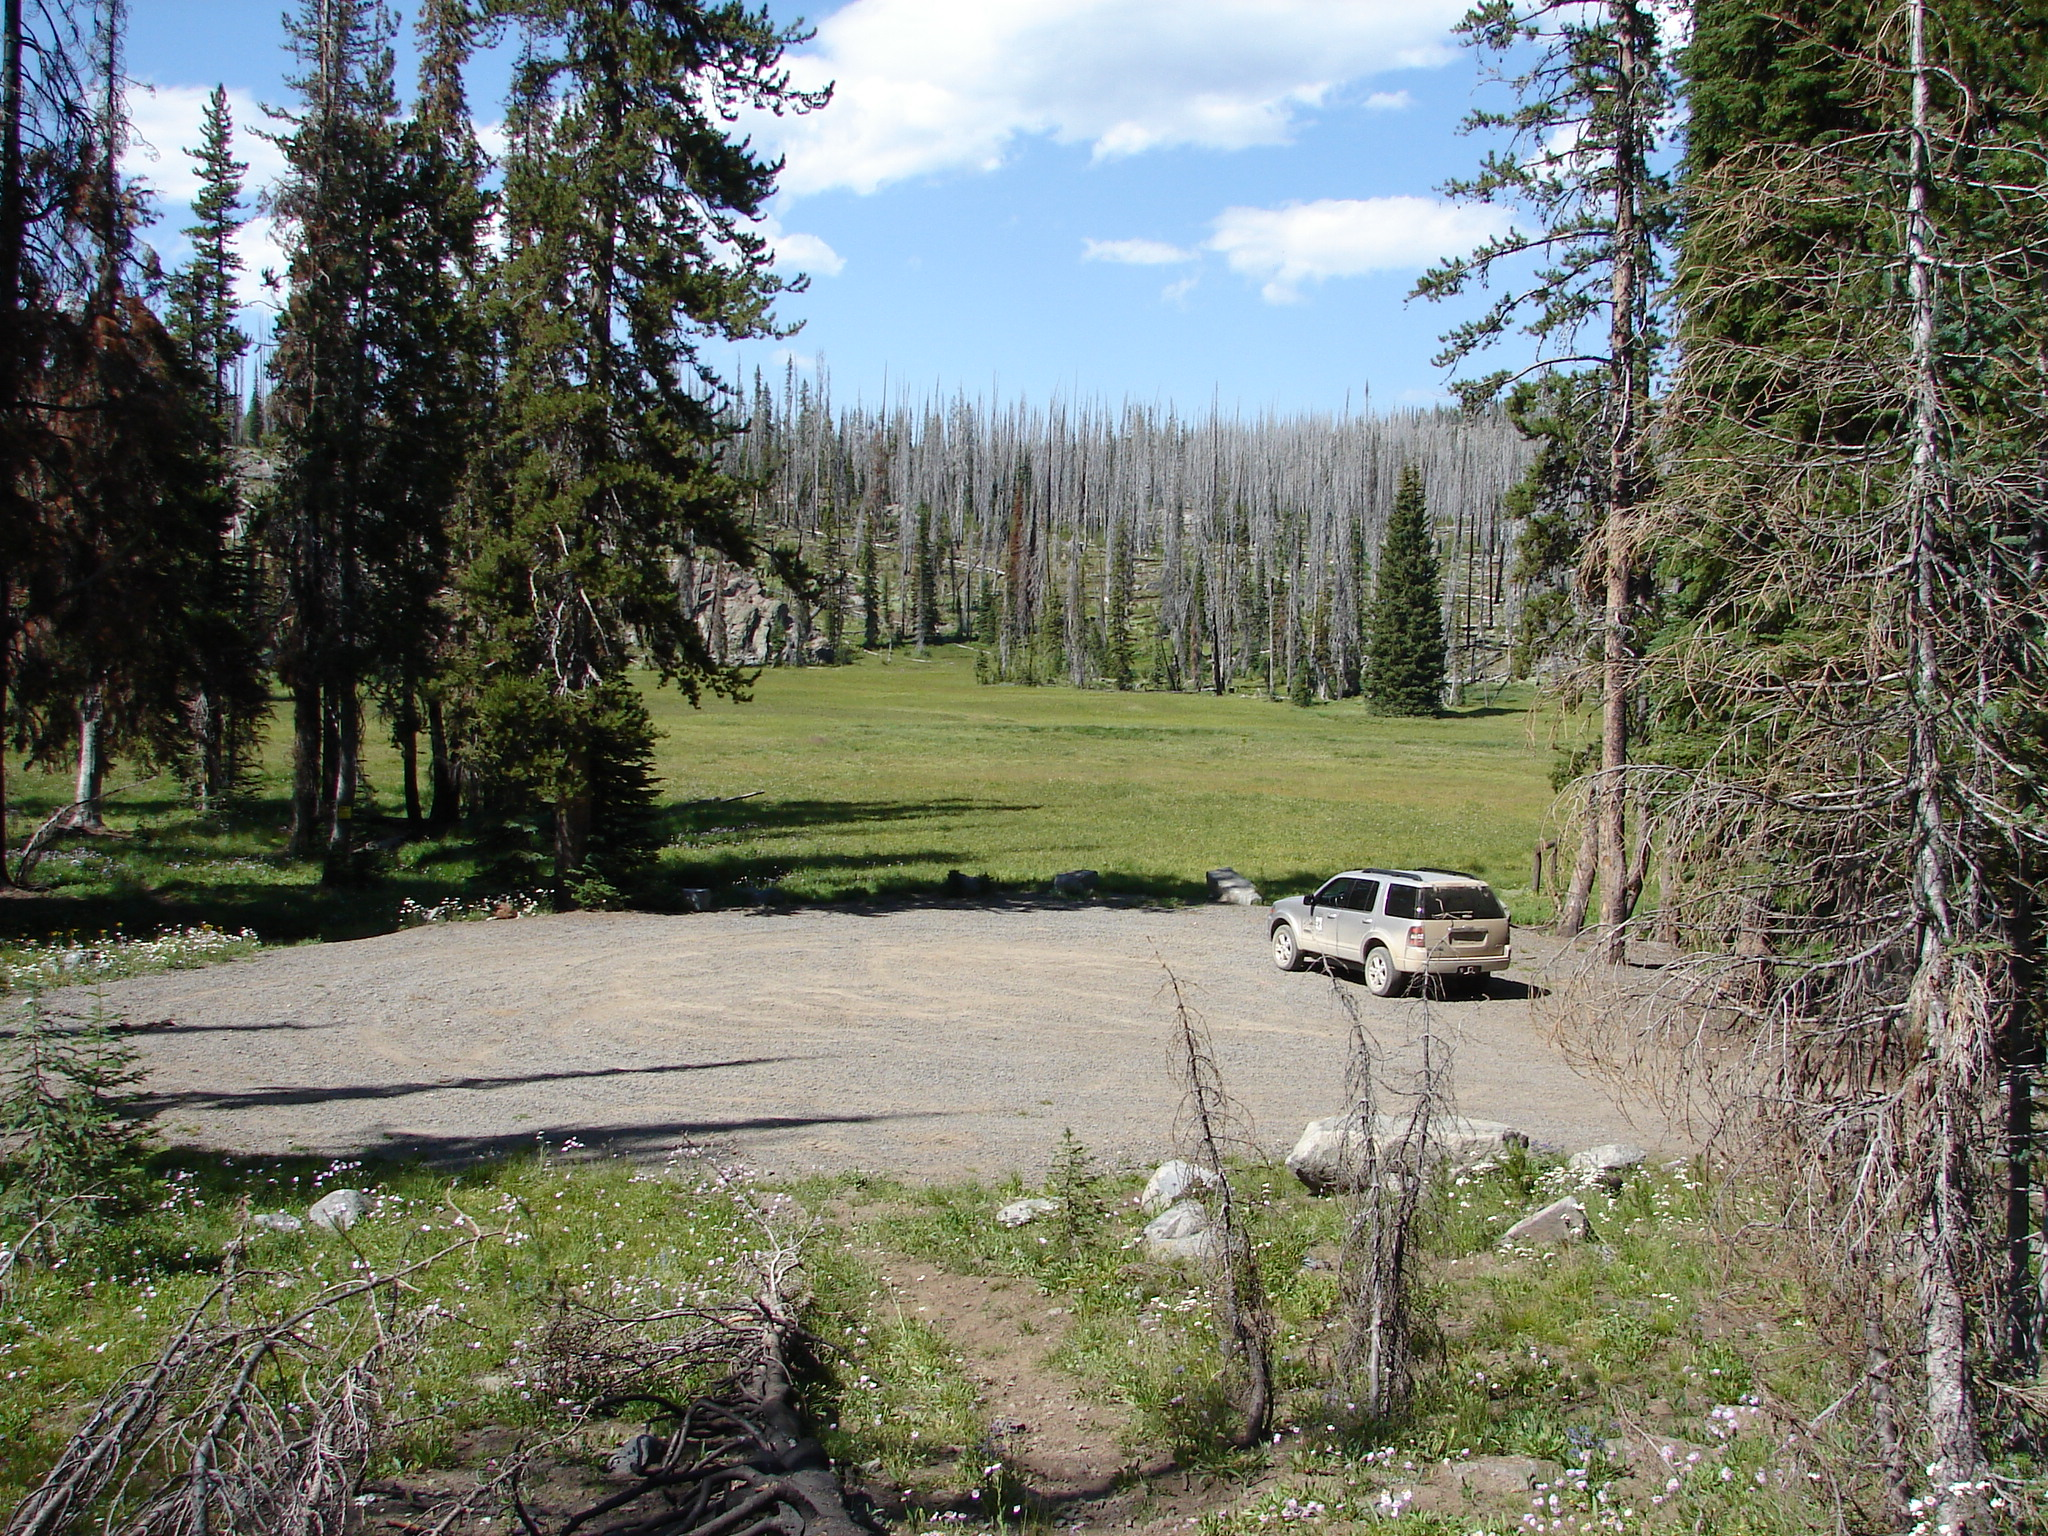 Trucks parked at Deadman Canyon Trailhead with meadow in background